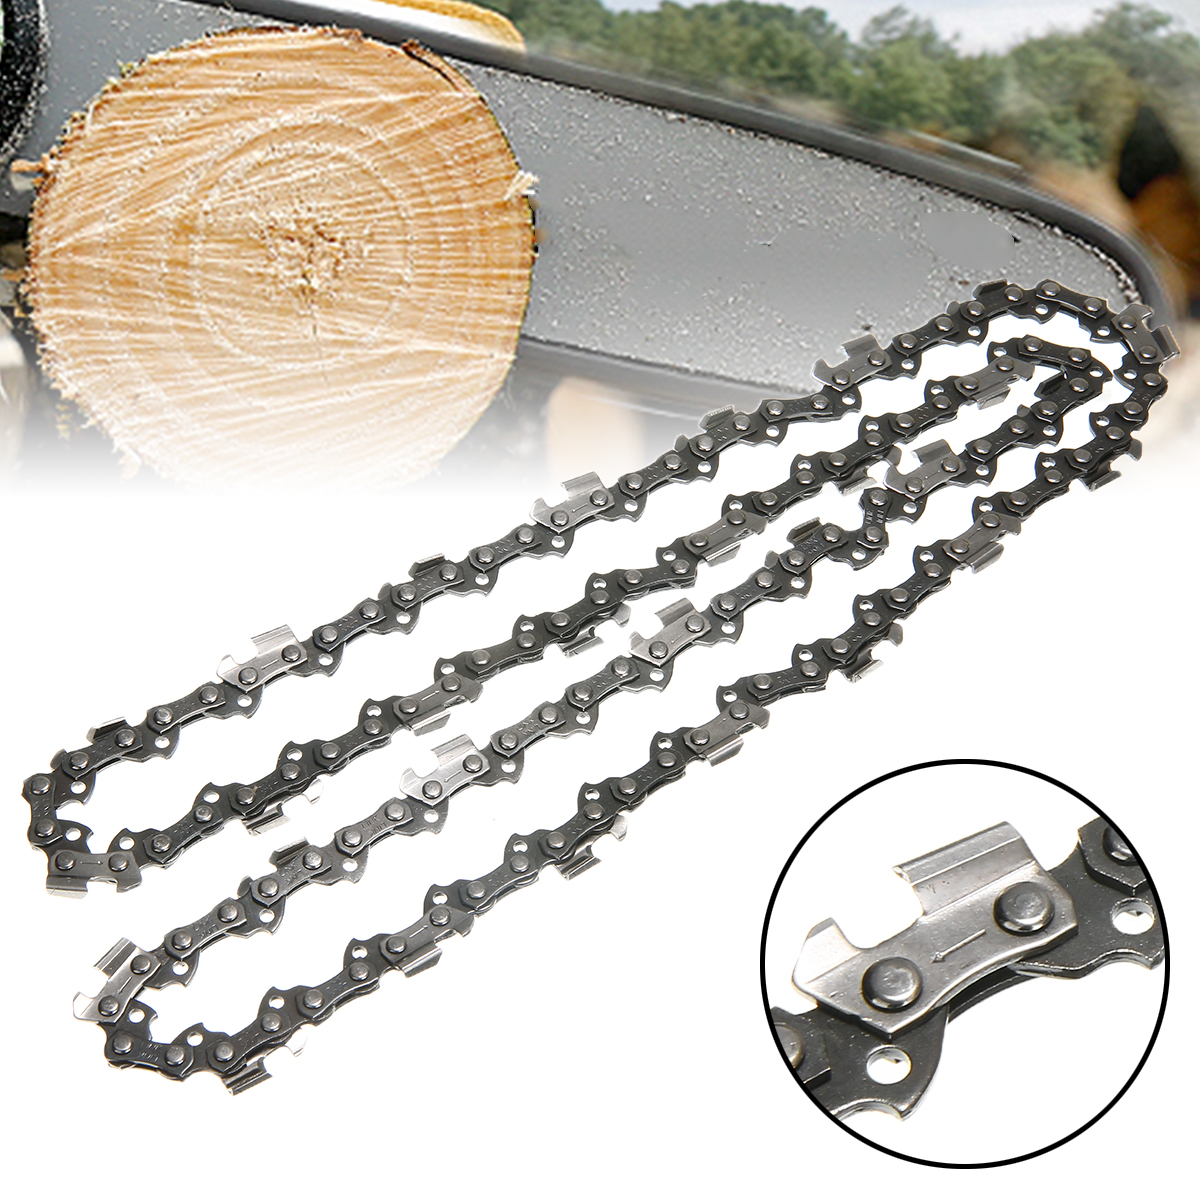 16 inch Chainsaw Saw Chain Blade 56DL Drive Link Metal High quality Durable